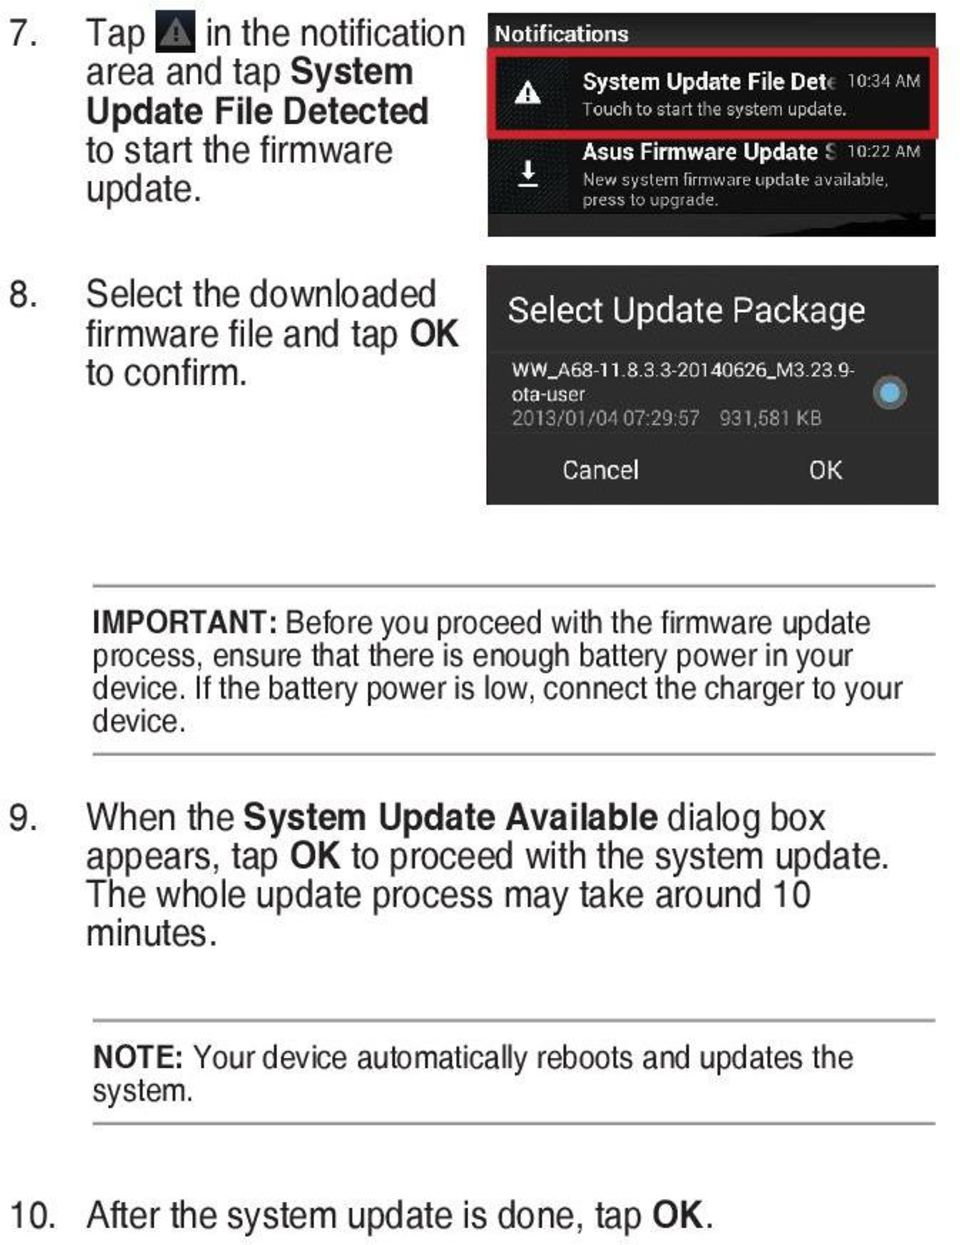 IMPORTANT: Before you proceed with the firmware update process, ensure that there is enough battery power in your device.